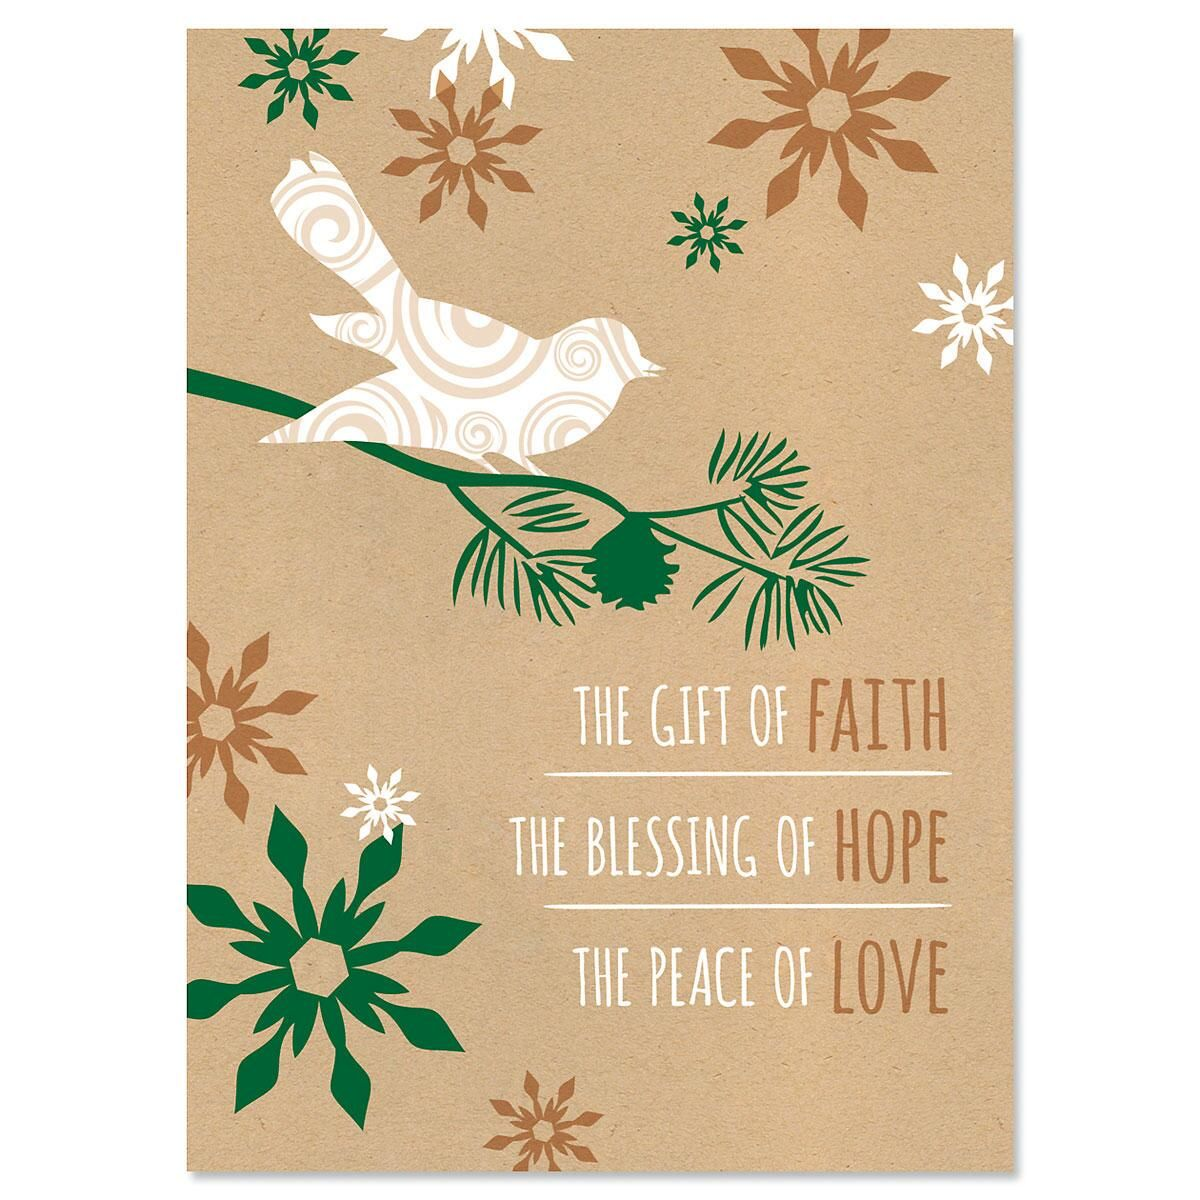 Blessings Personalized Christmas Cards - Set of 18